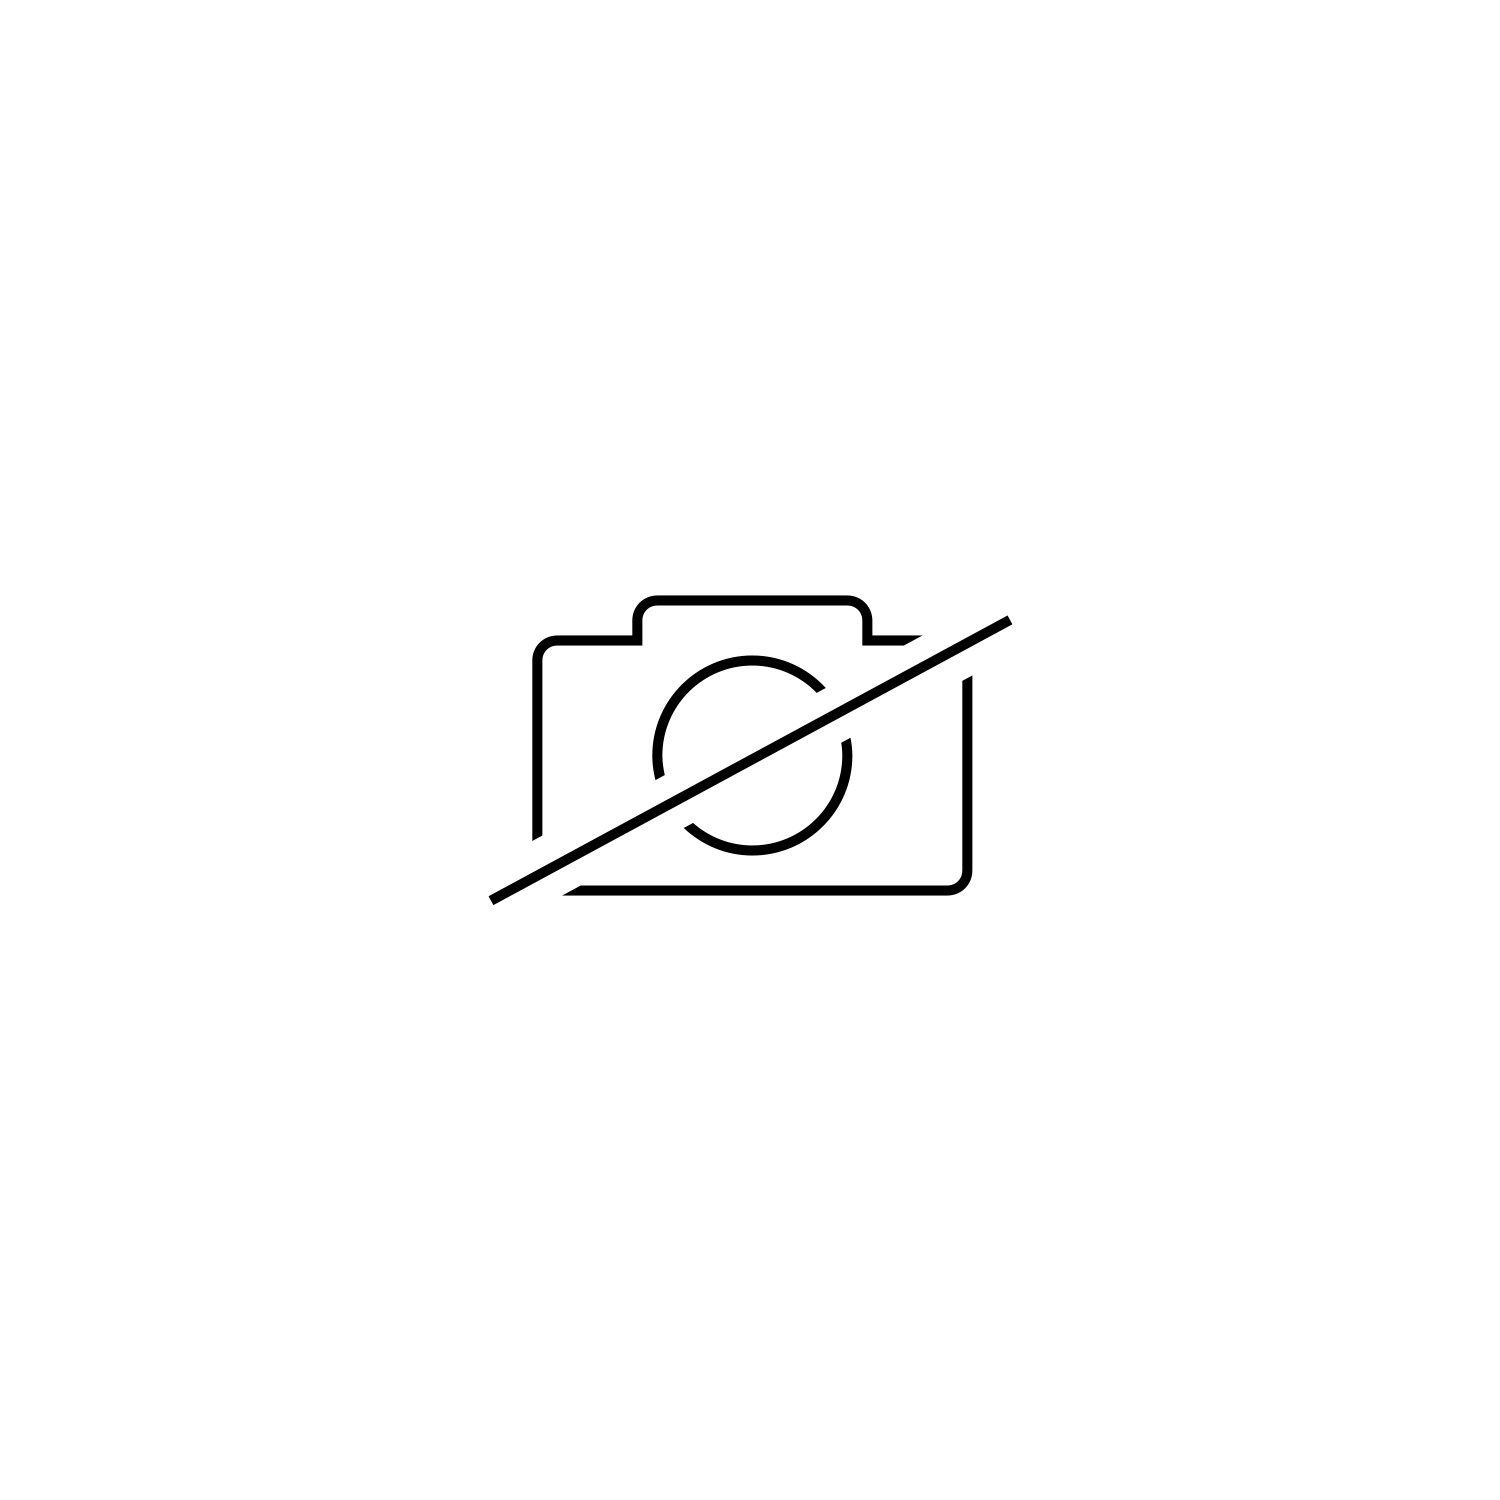 quattro Hoodie, Womens, Light grey, S